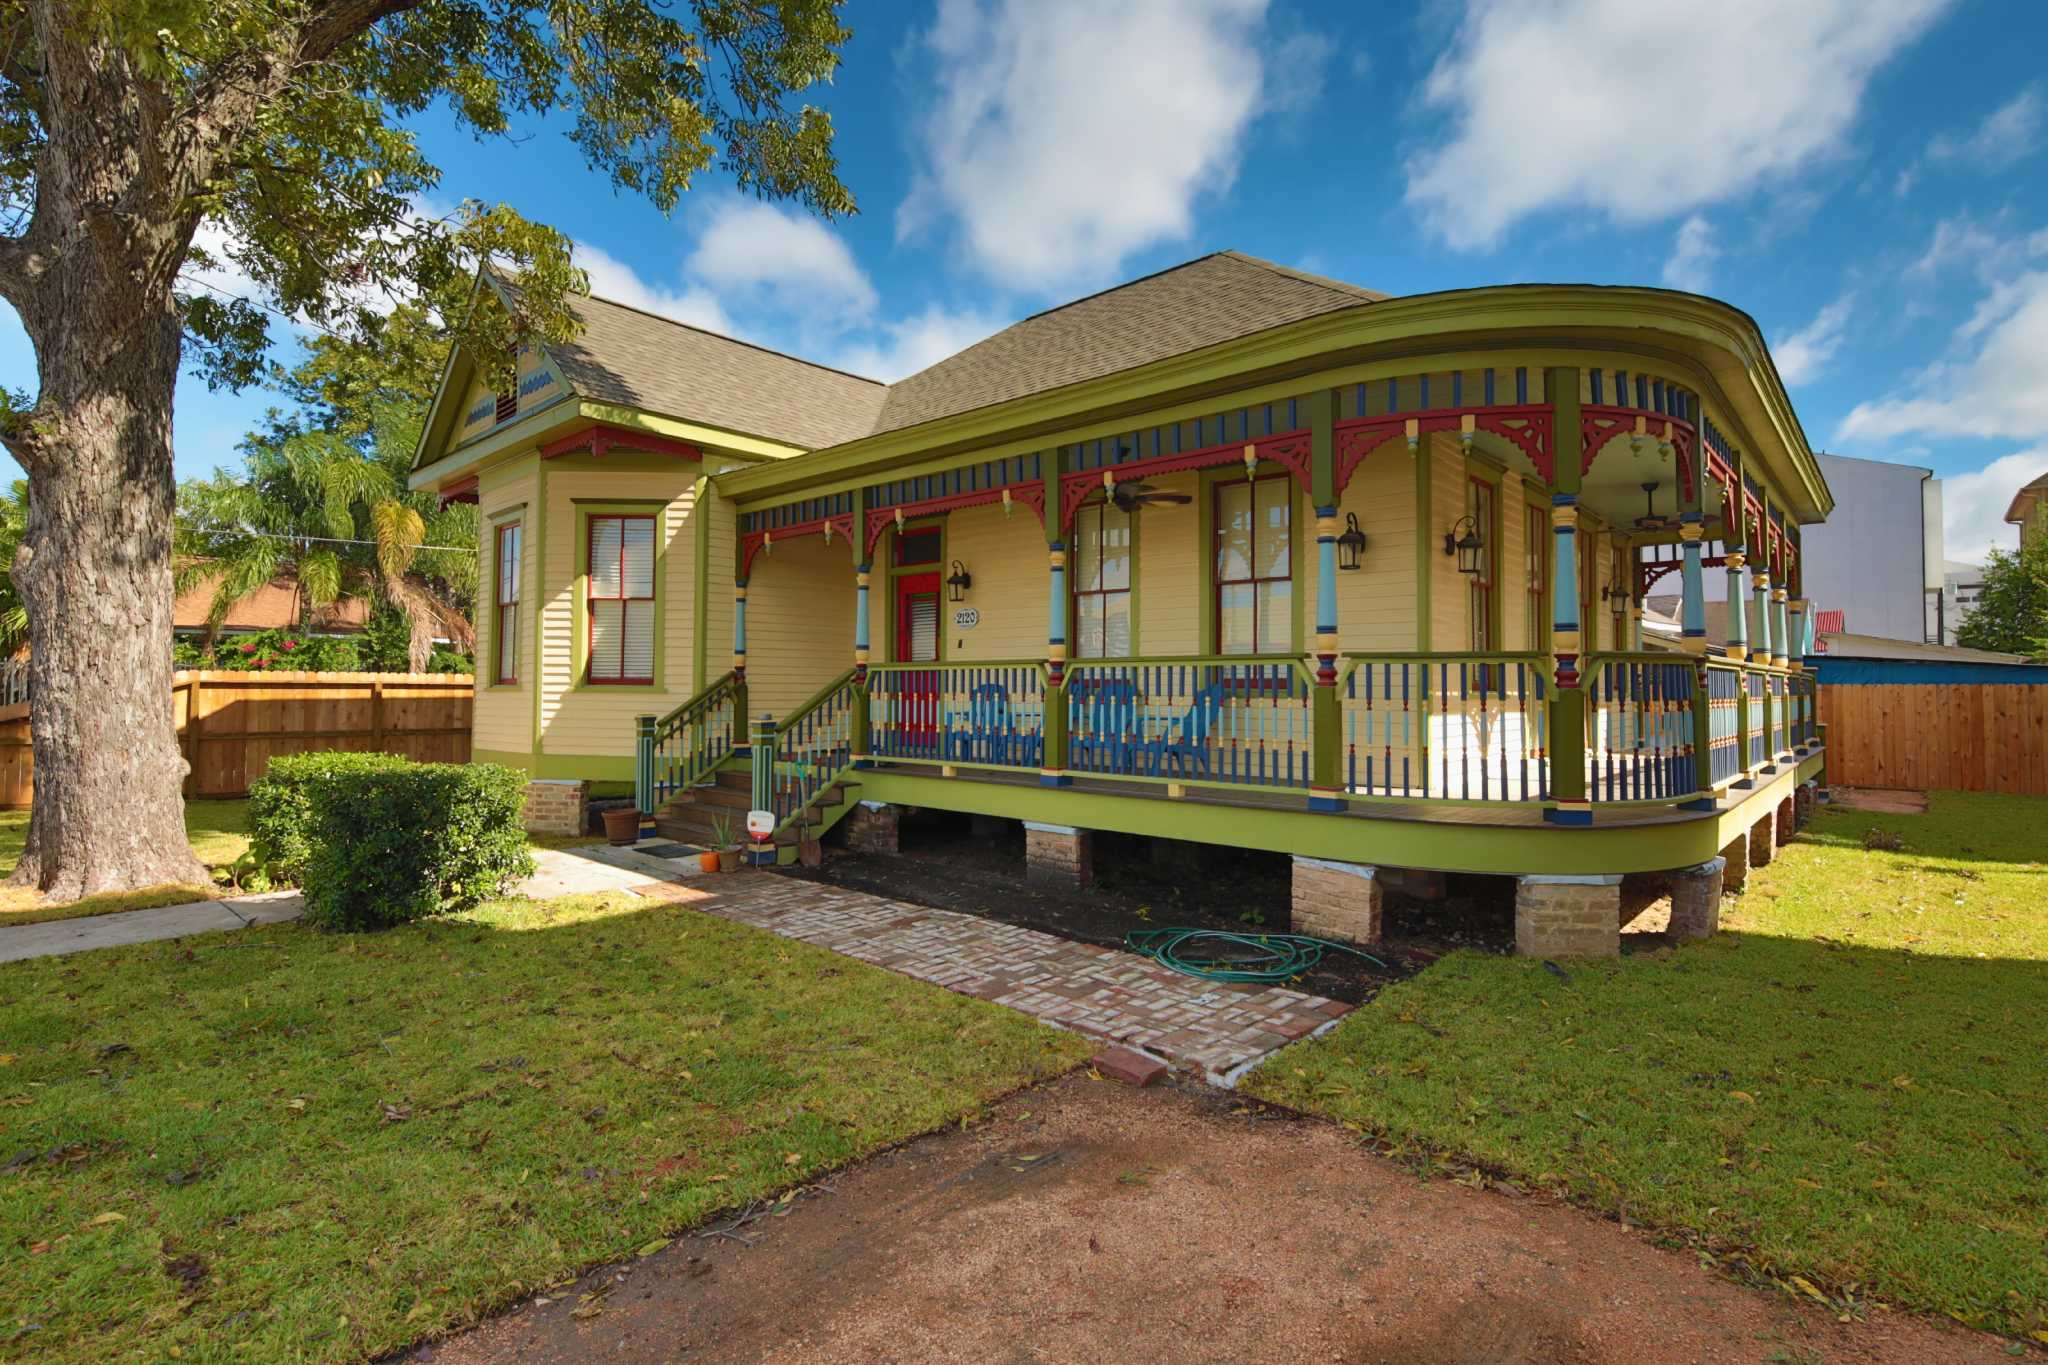 FW Heritage saves small pieces of Houston history one home at a